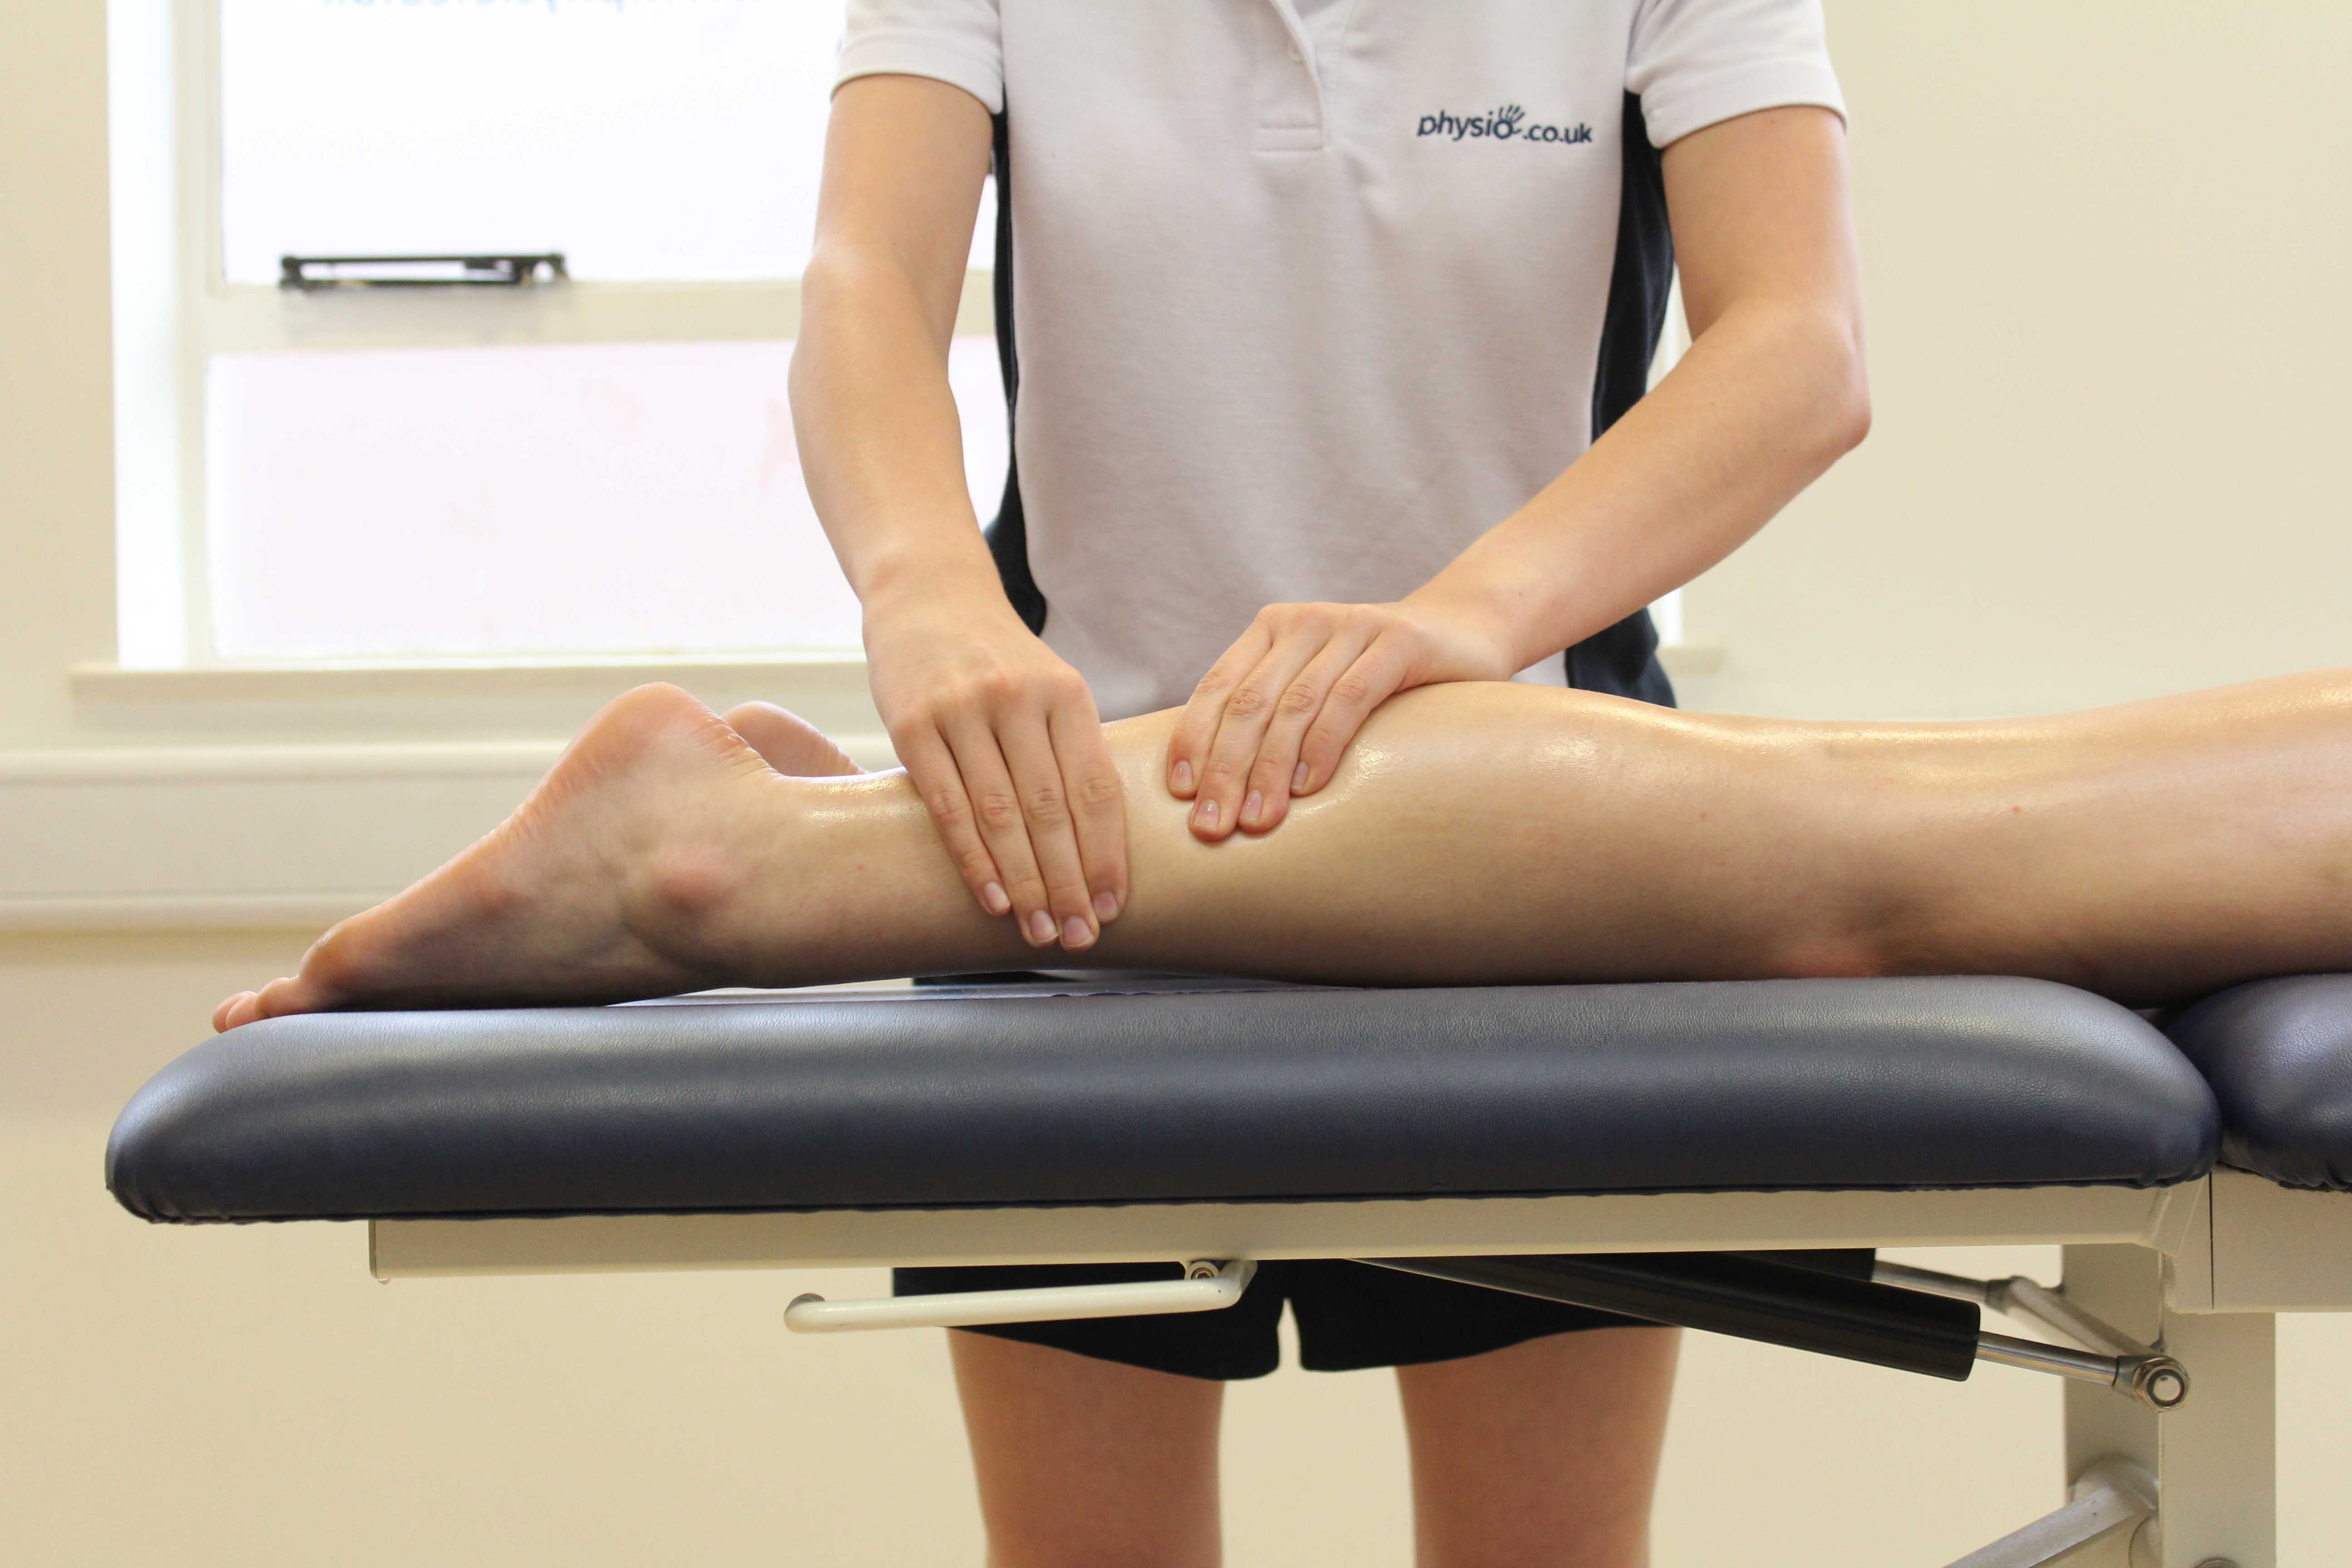 Rolling massage technique on gastocnemius and soleus muscles